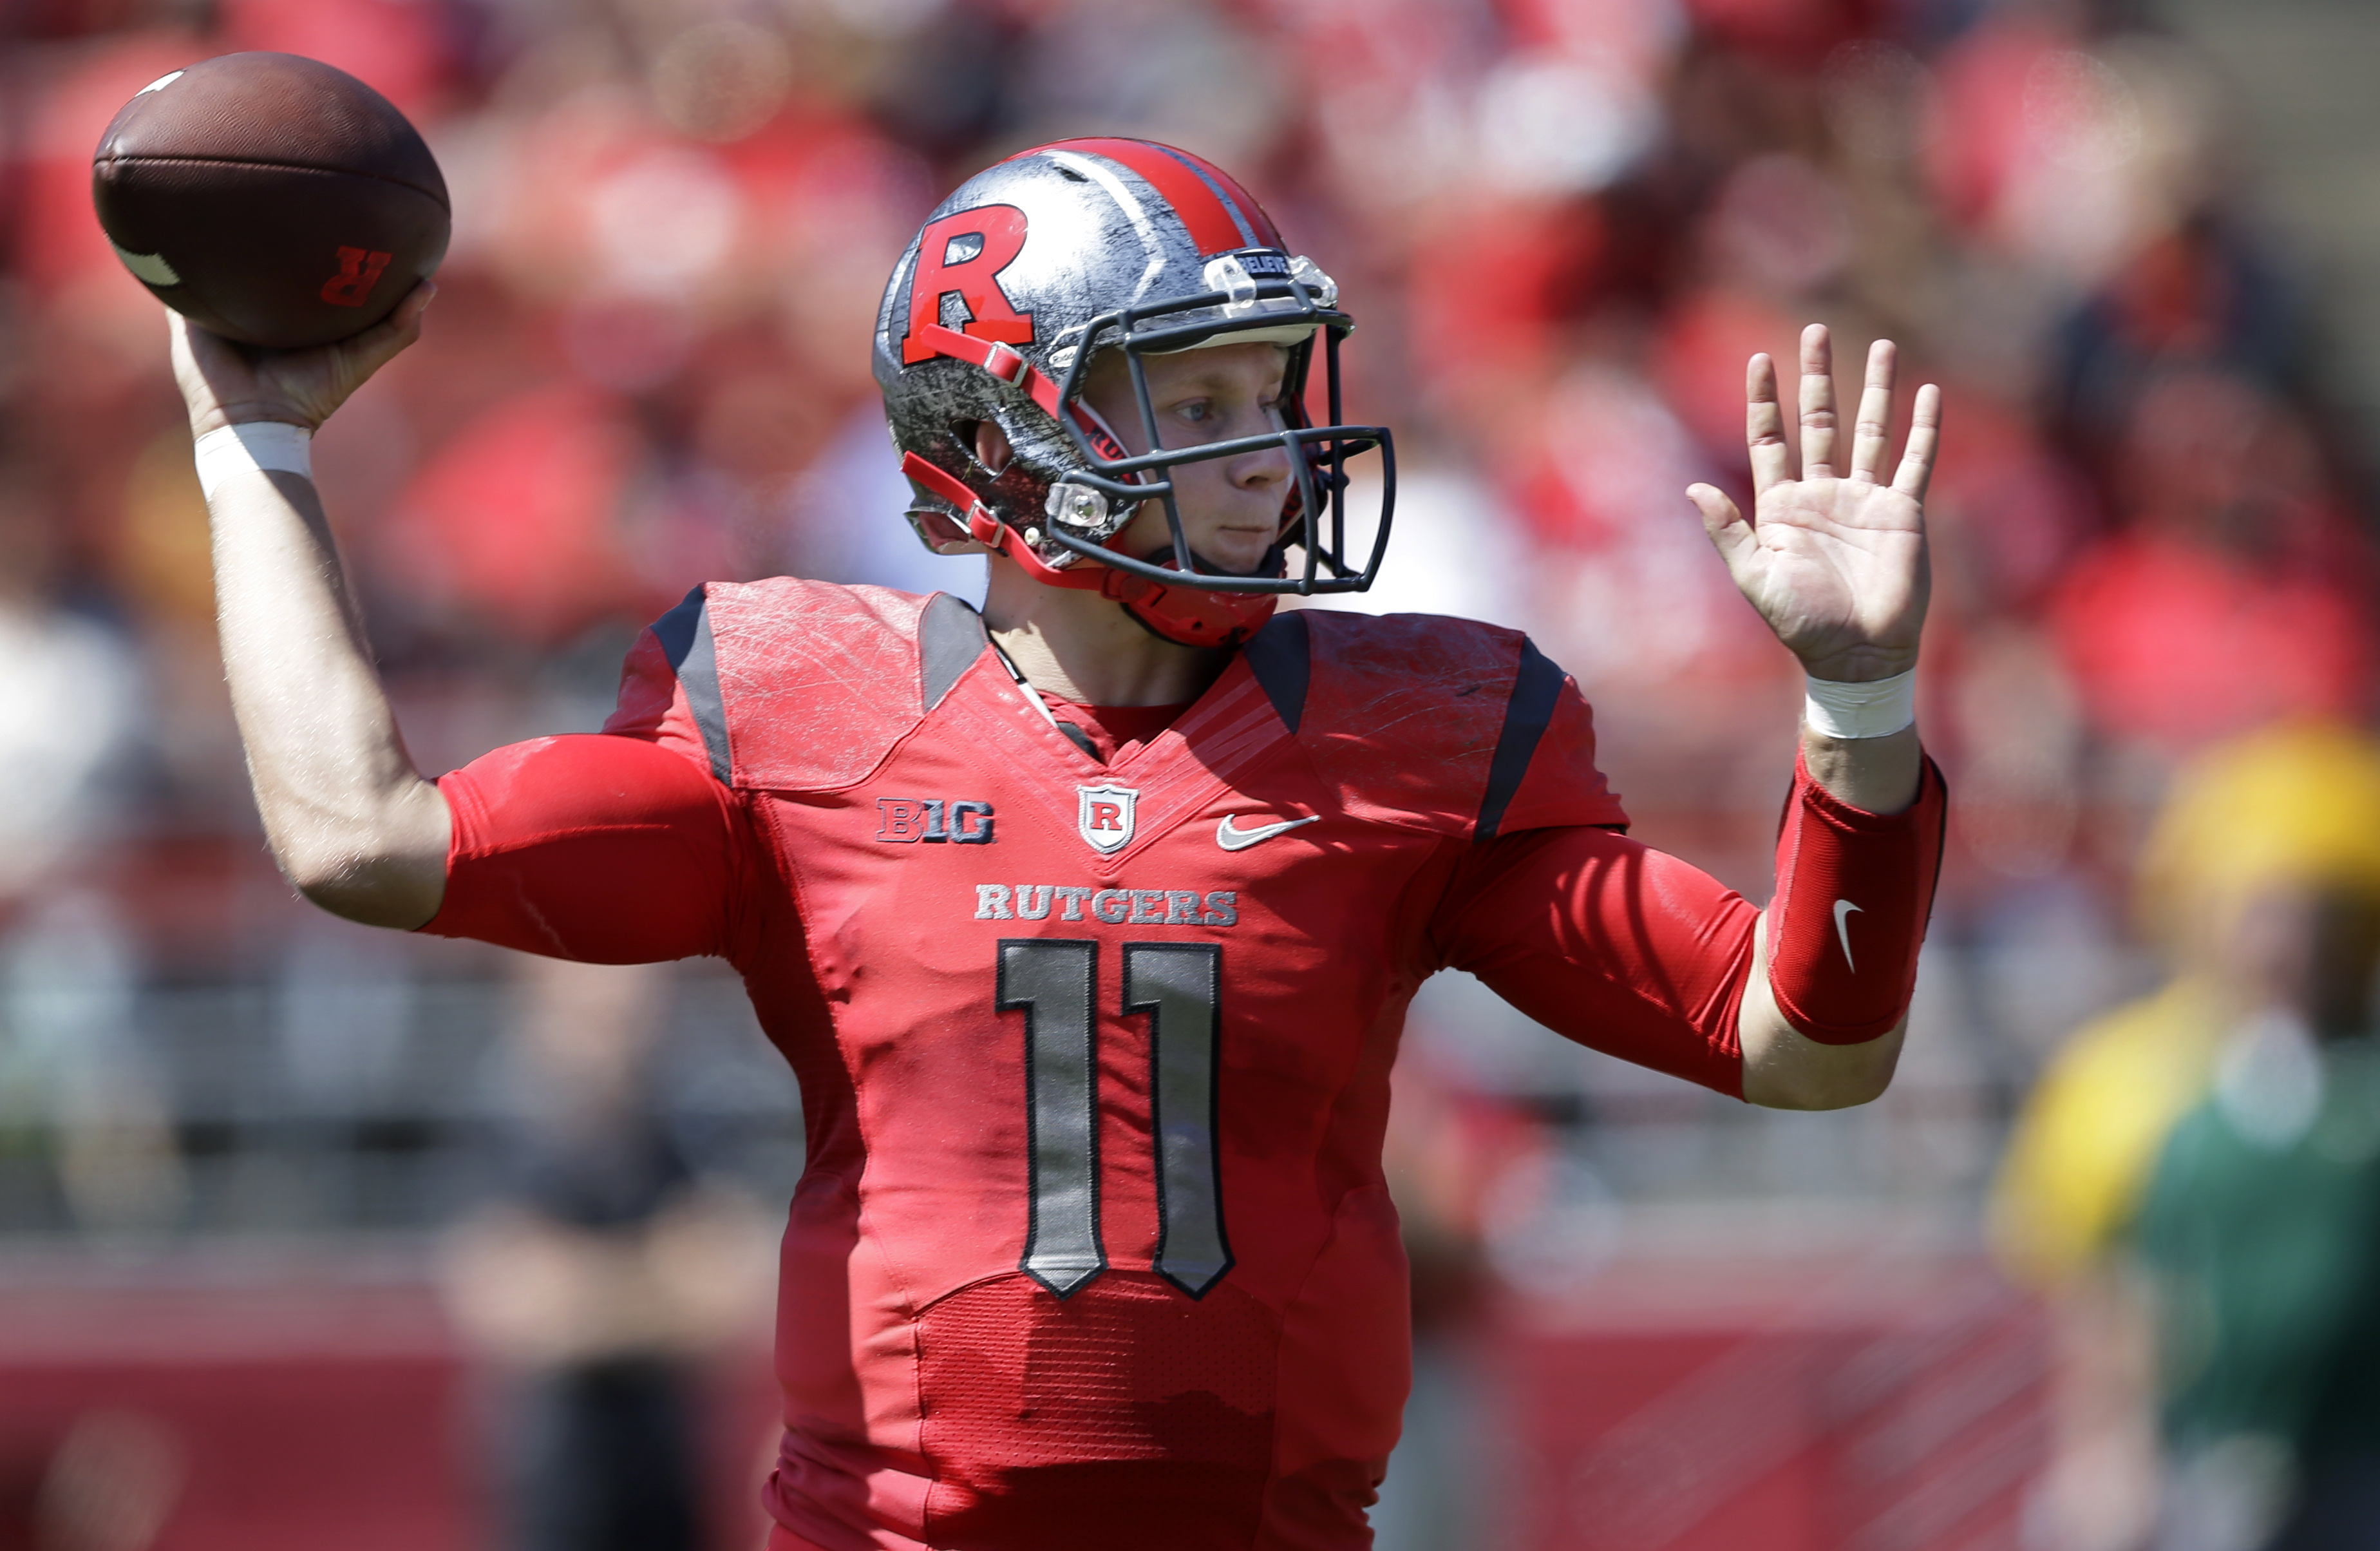 Rutgers quarterback Hayden Rettig (11) throws a pass during the first half of an NCAA college football game against Norfolk State Saturday, Sept. 5, 2015, in Piscataway, N.J. (AP Photo/Mel Evans)